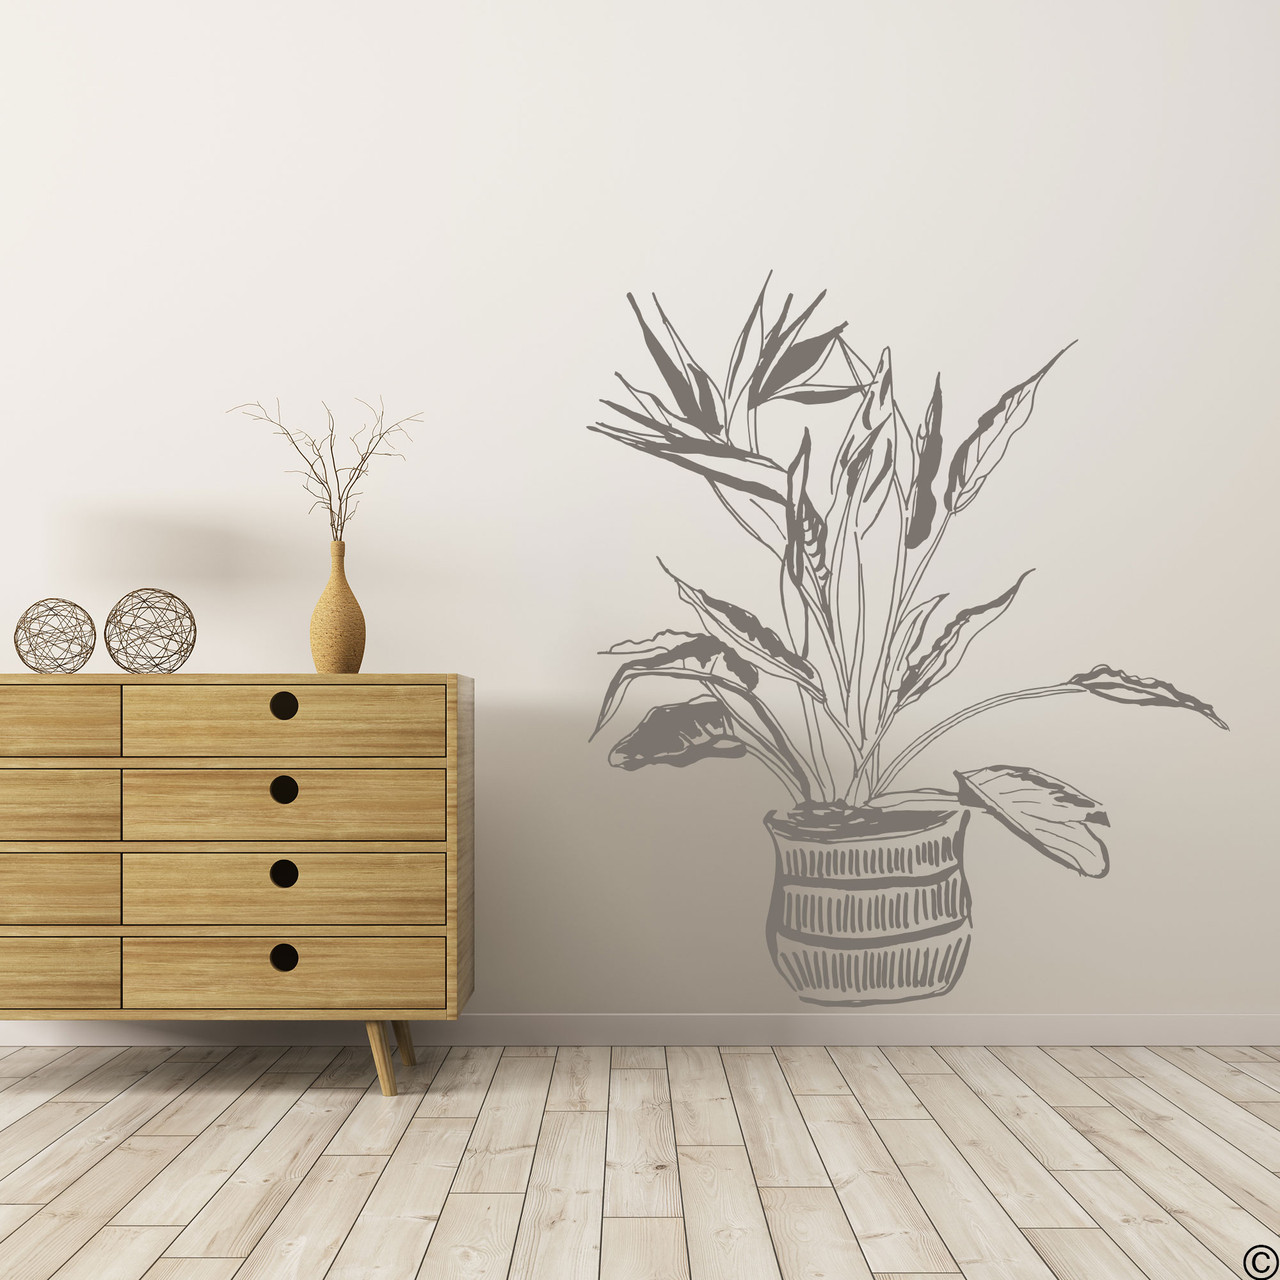 The hand drawn Bird of Paradise potted plant wall decal in the limited edition castle grey vinyl color.